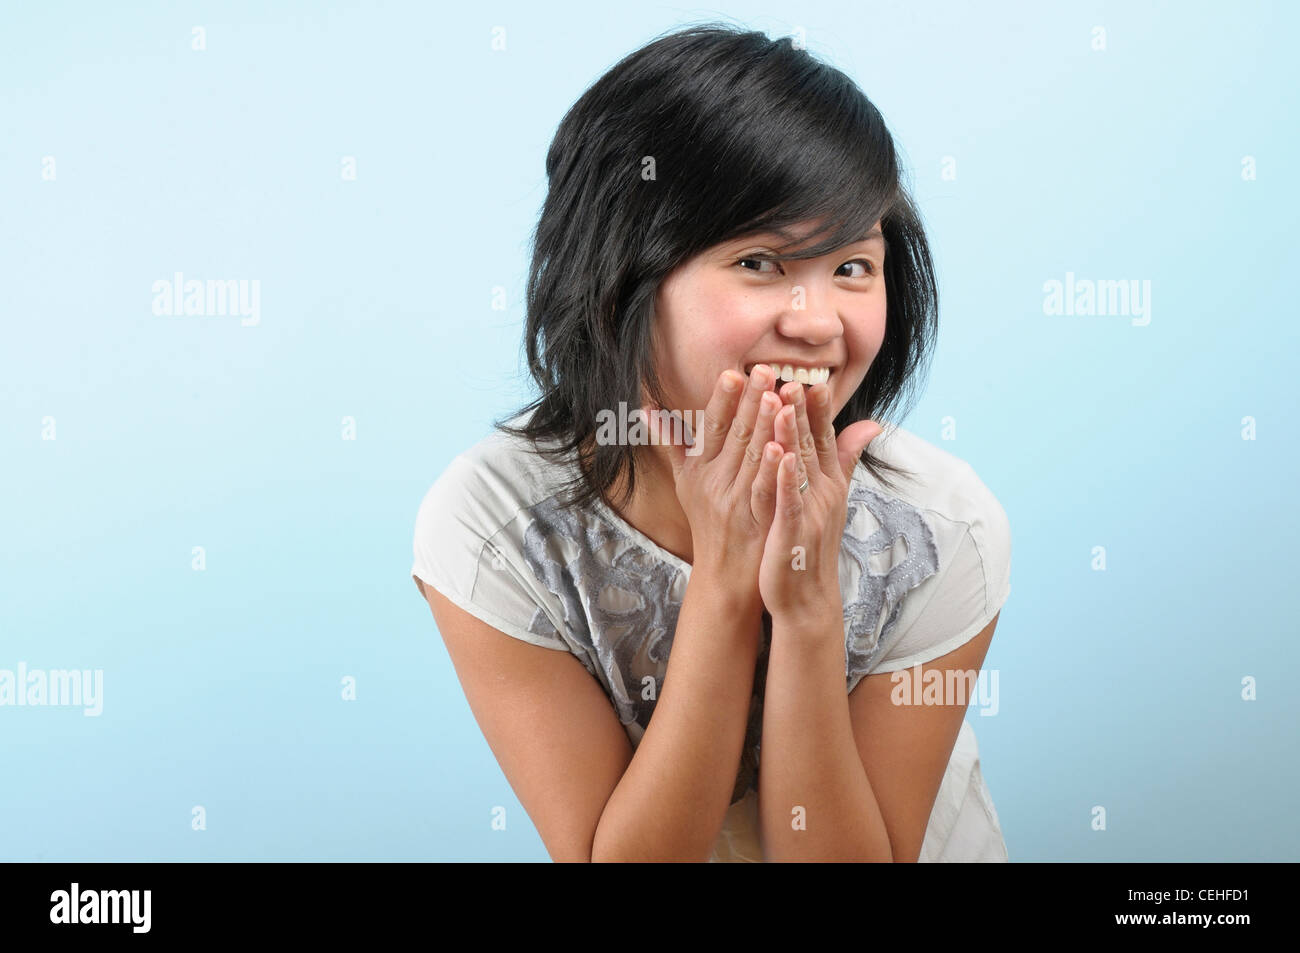 6a4ade56f69 Young Asian woman holds her hands to her face in delight - Stock Image